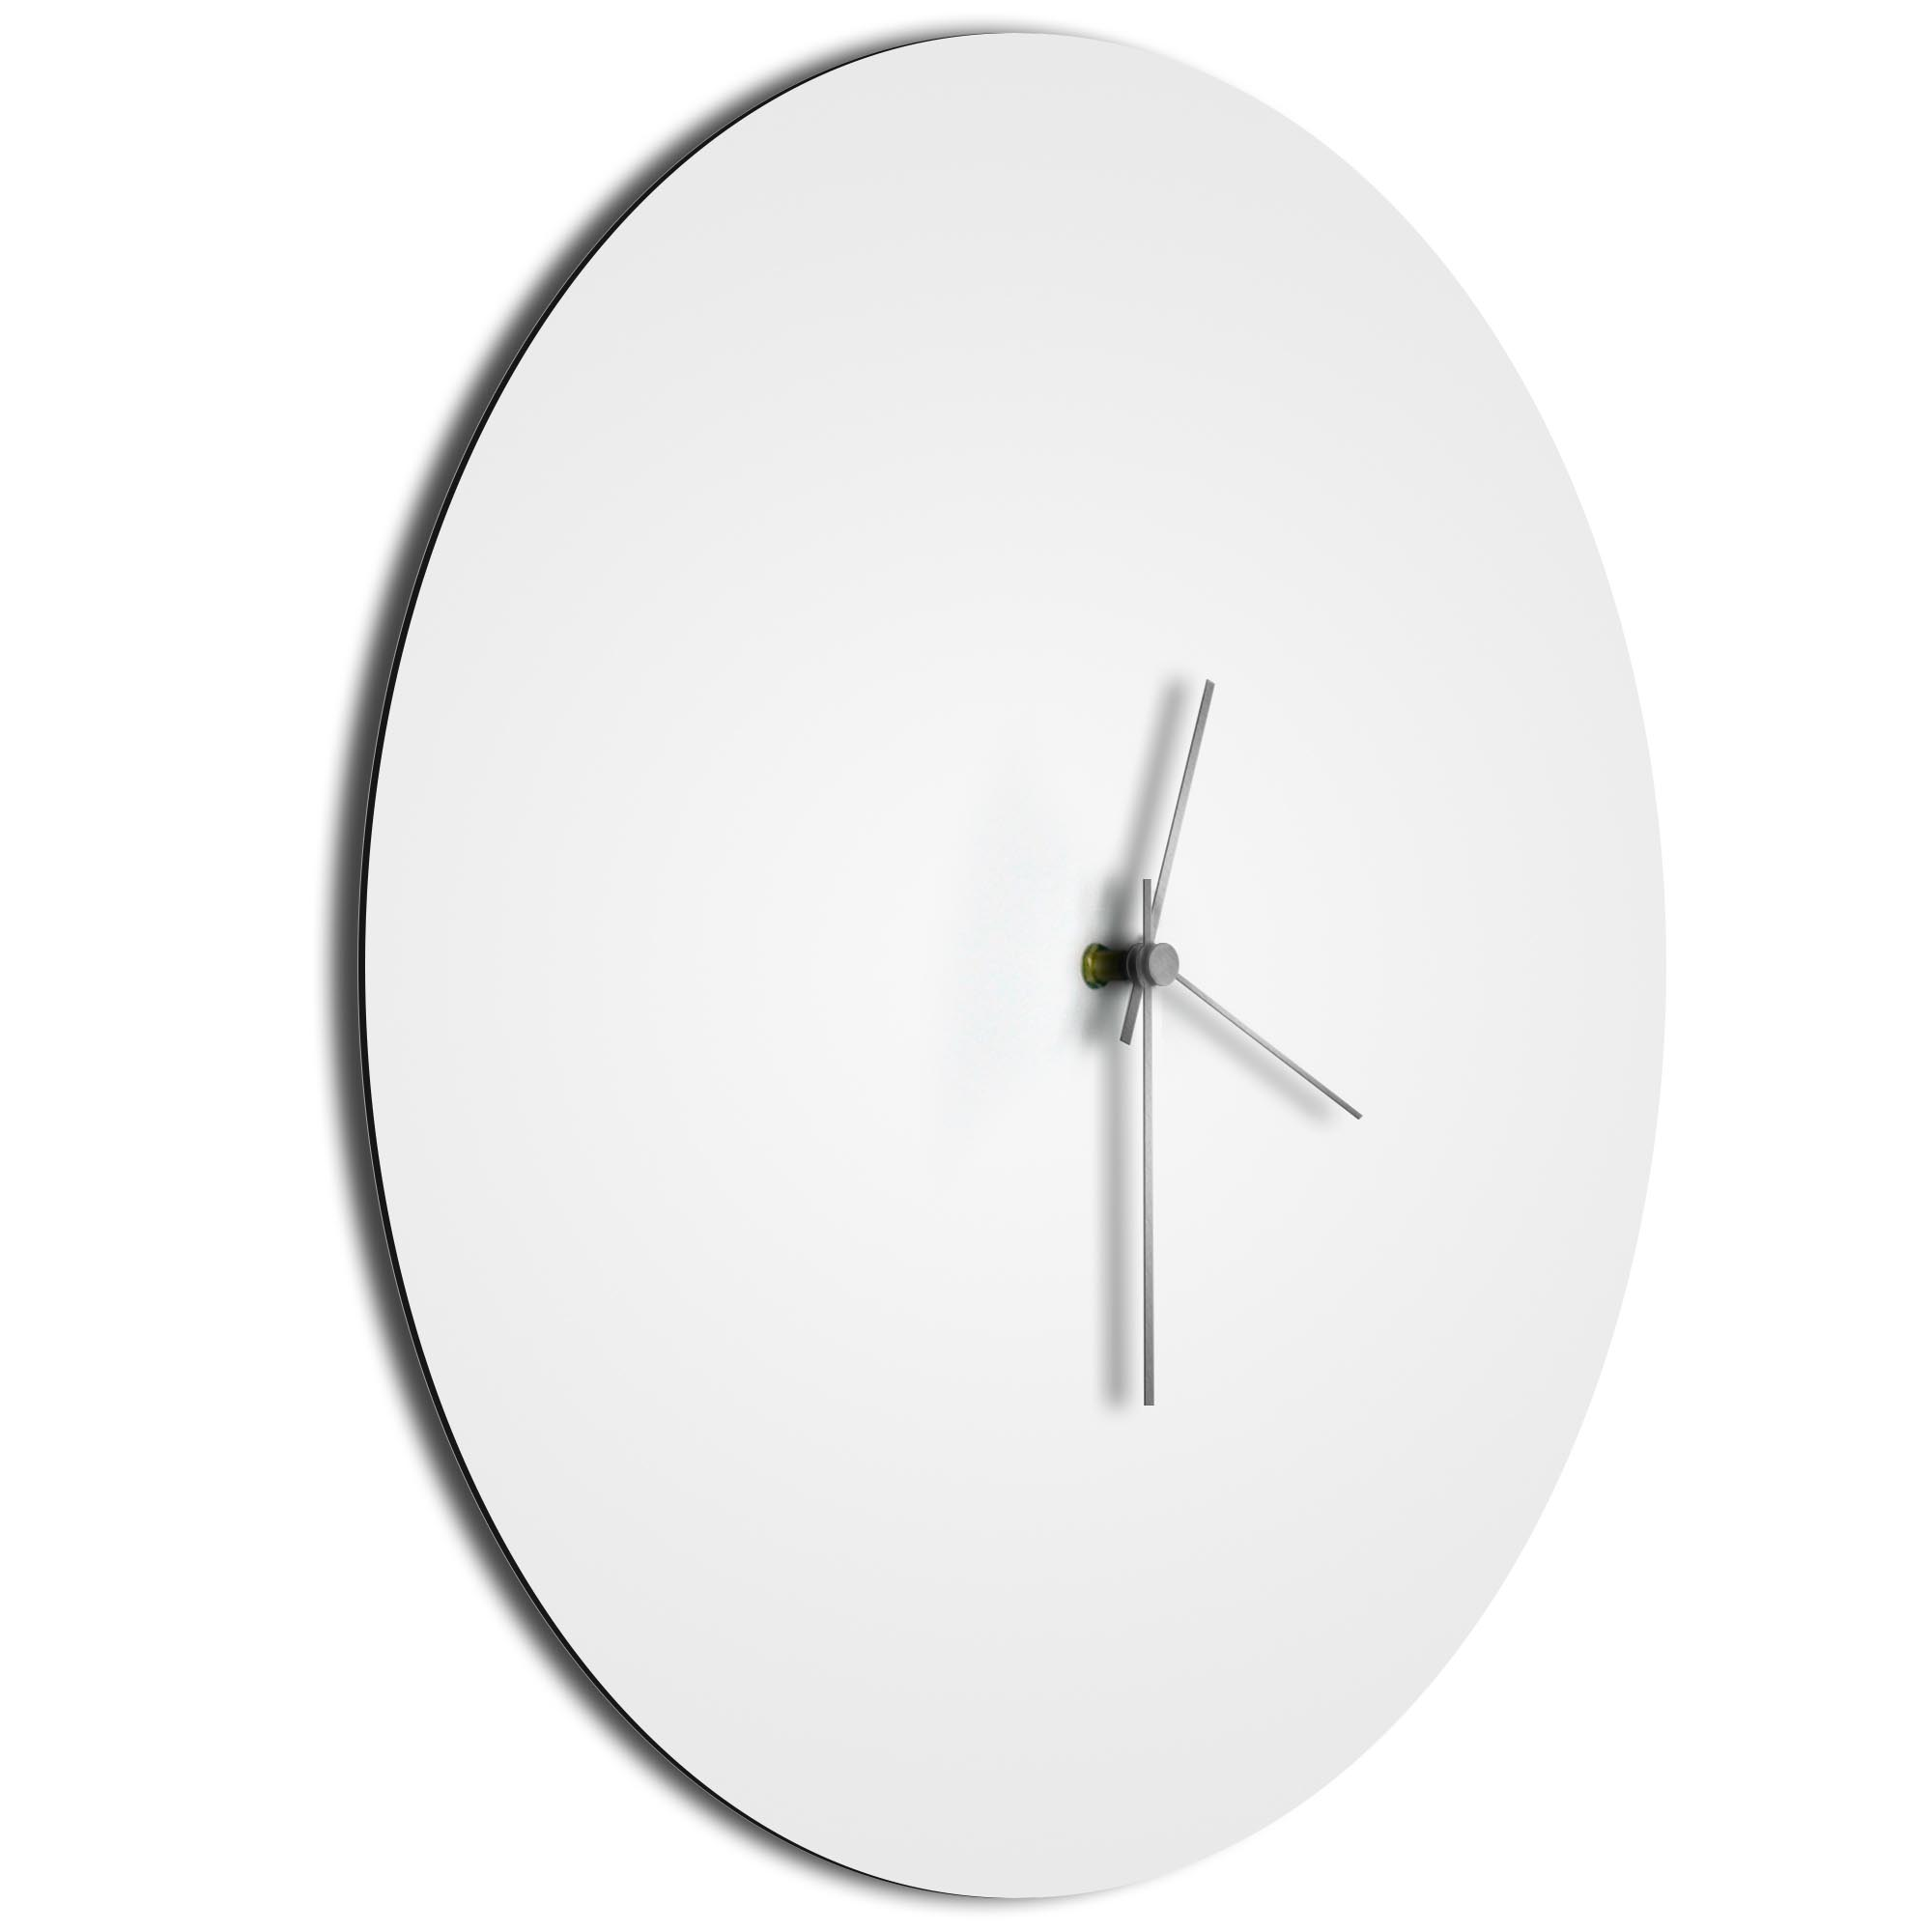 Whiteout Silver Circle Clock Large - Image 2